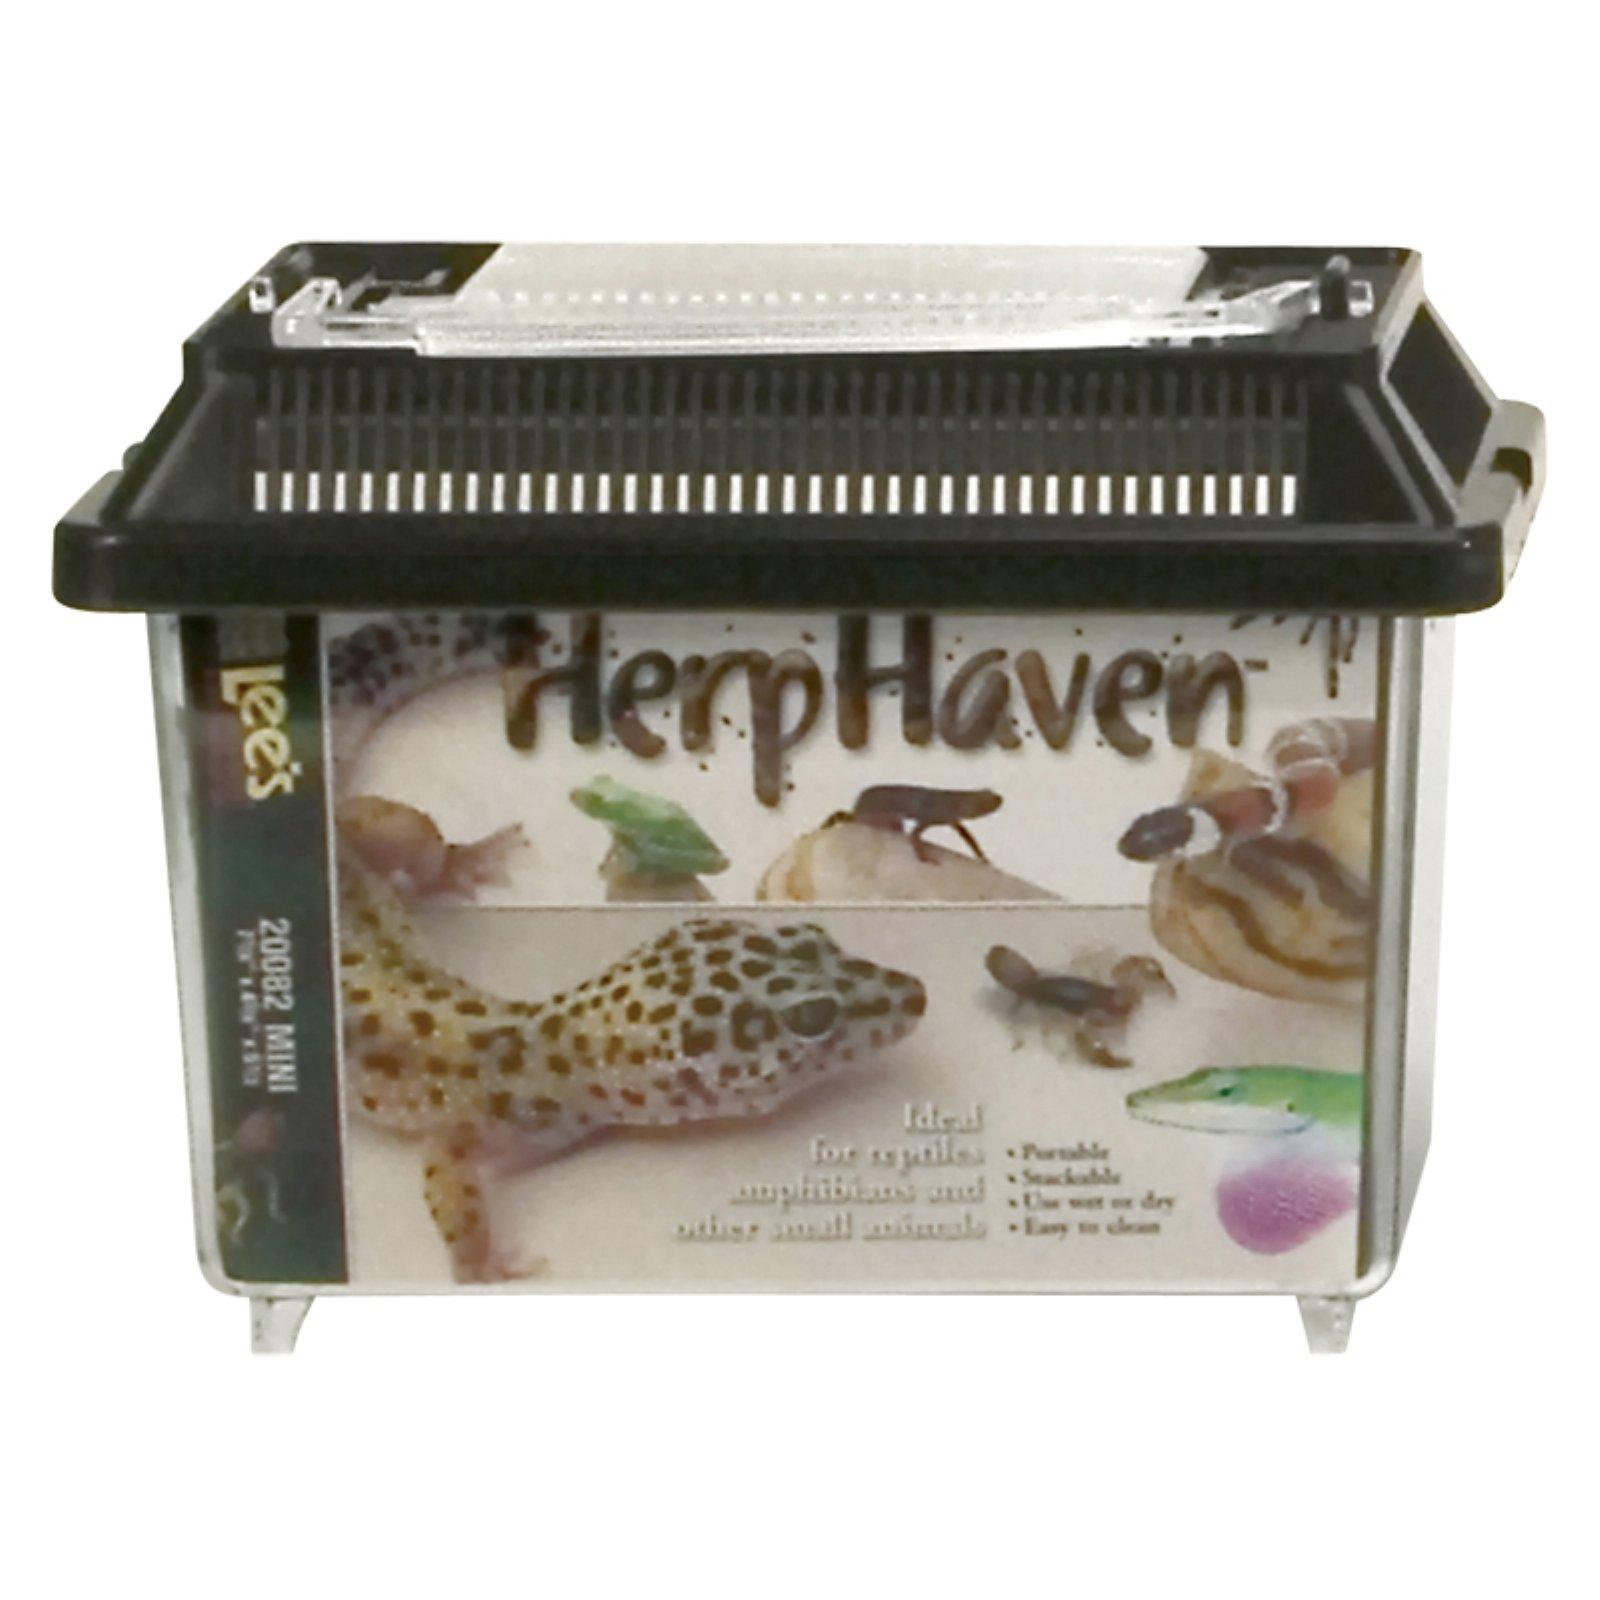 Lee's Aquarium HerpHaven Rectangle Reptile Carrier by 20084